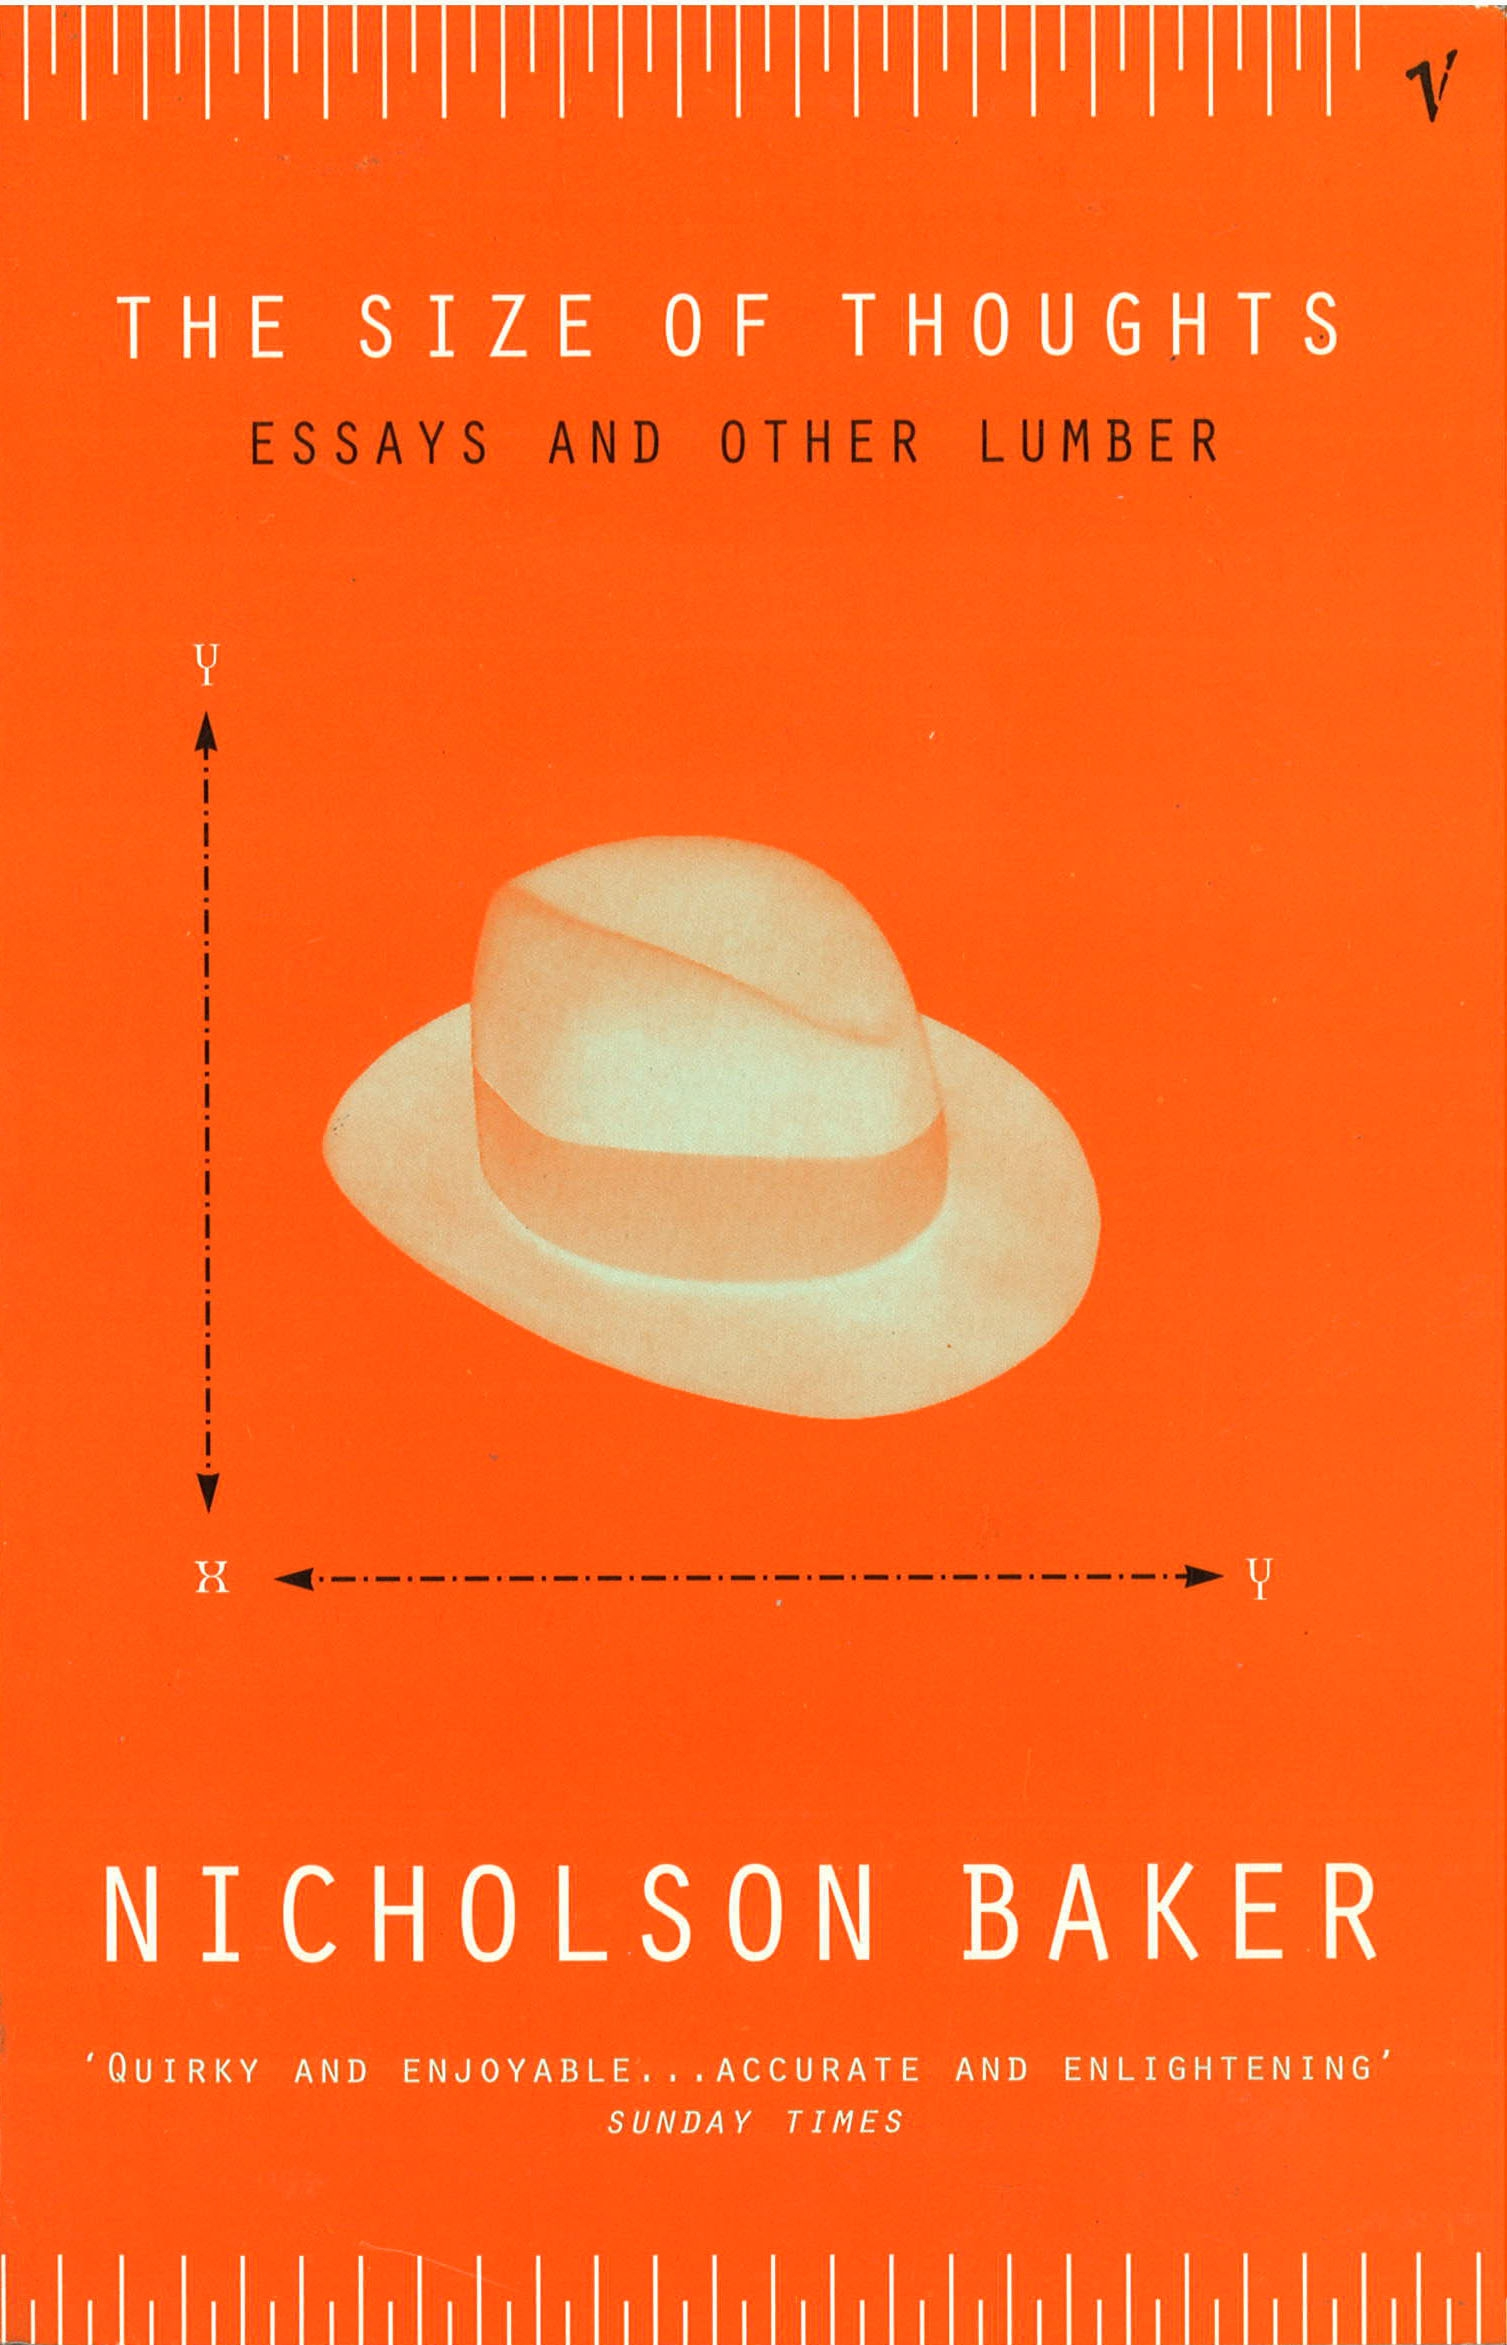 nicholson baker essay As well as the entire lrb archive of over 16,500 essays and reviews   nicholson baker's new novel vox is also 'about telephone sex',.